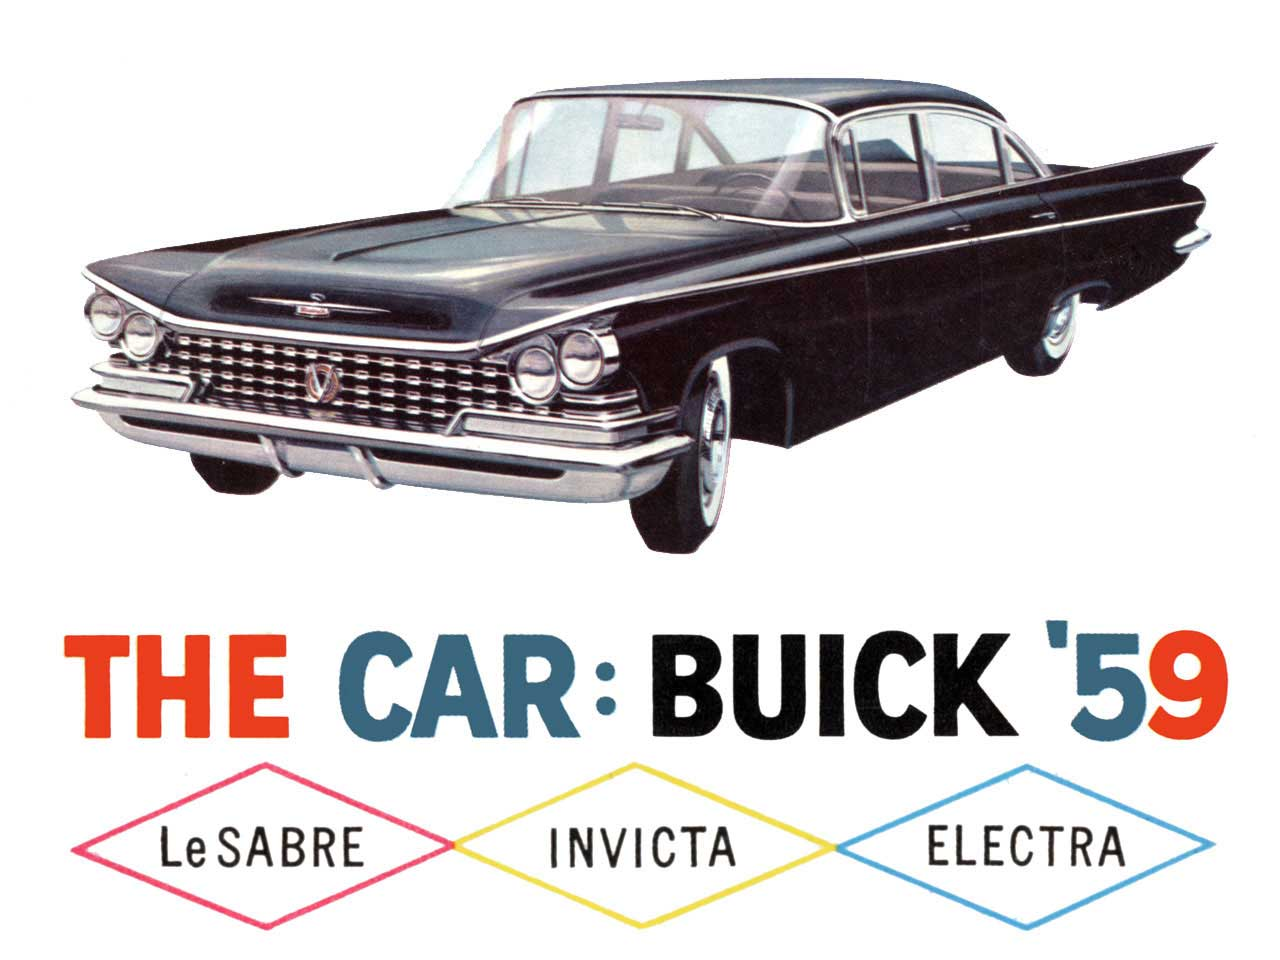 1959 Buick - The Car - Buick 59